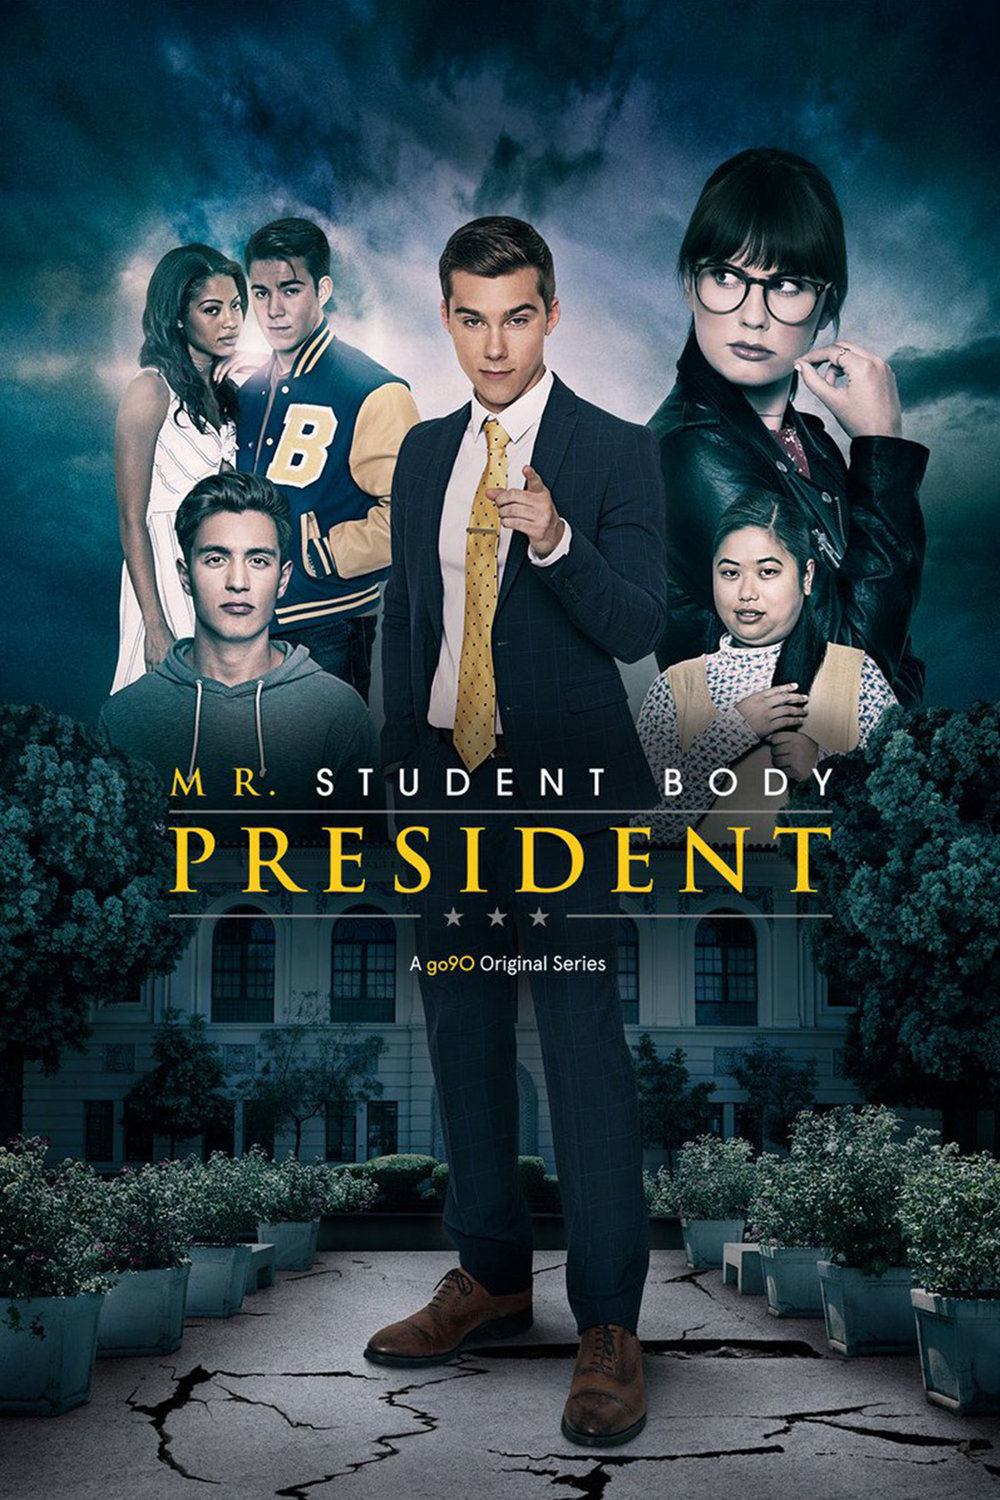 MR. STUDENT BODY PRESIDENT   TV Series, Comedy (Season 2-4)  Studio/Network - New Form/Go90  Creators - Ryan Hunter, Jack Ferry  Editor - Waldemar Centeno  *2017 Streamys - Winner Best Directing, Ensemble Cast / Nominated Best Comedy, Acting  2018 Streamys - Nominated Best Directing, Acting